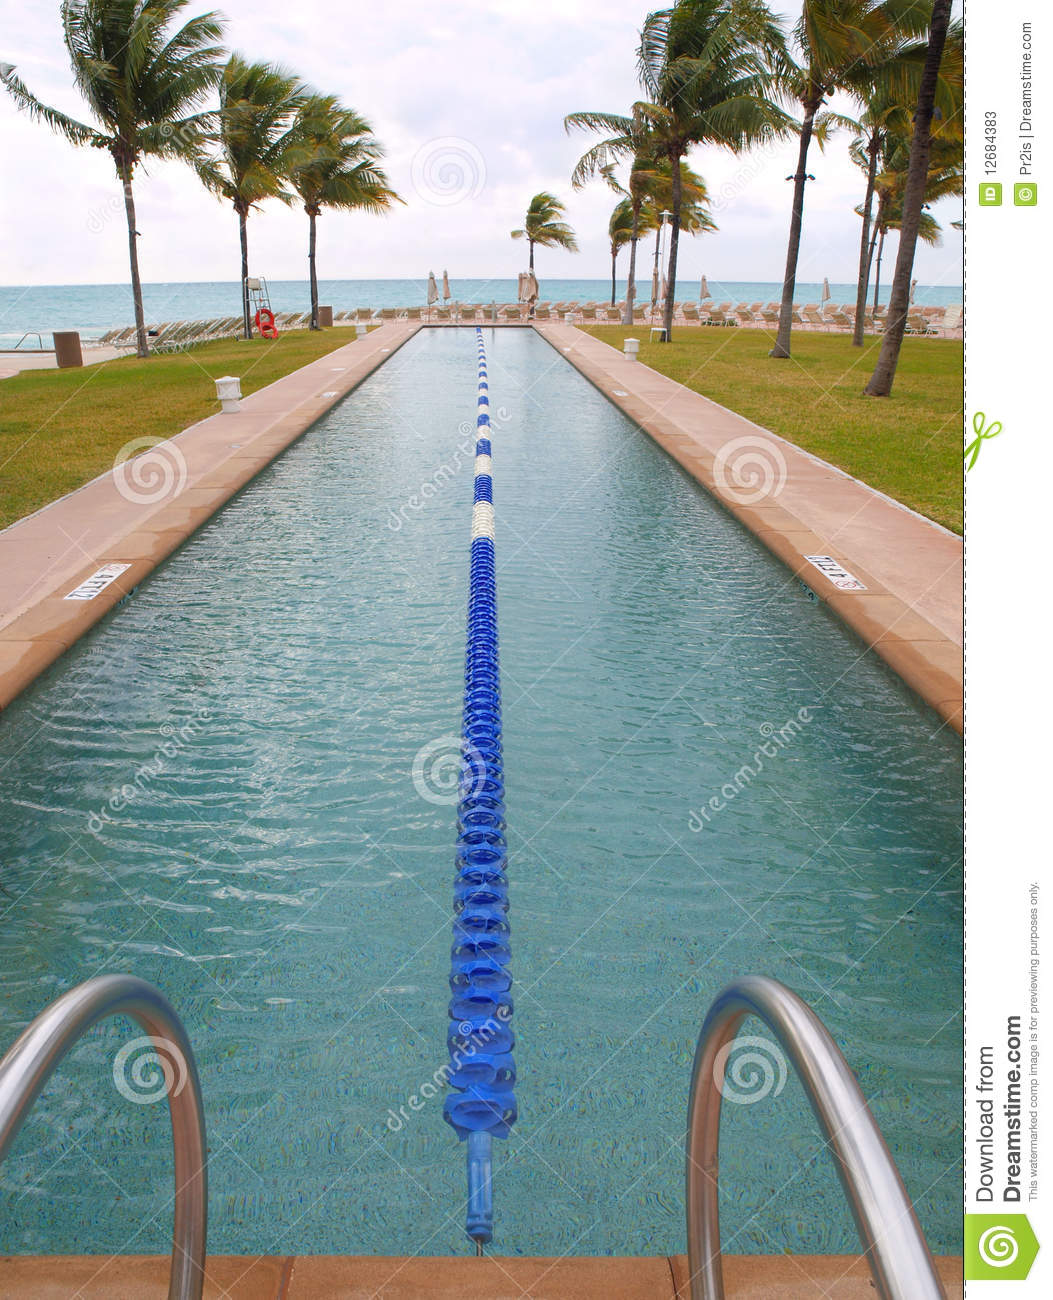 Swimming Lap Pool On The Beach Stock Photos - Image: 12684383